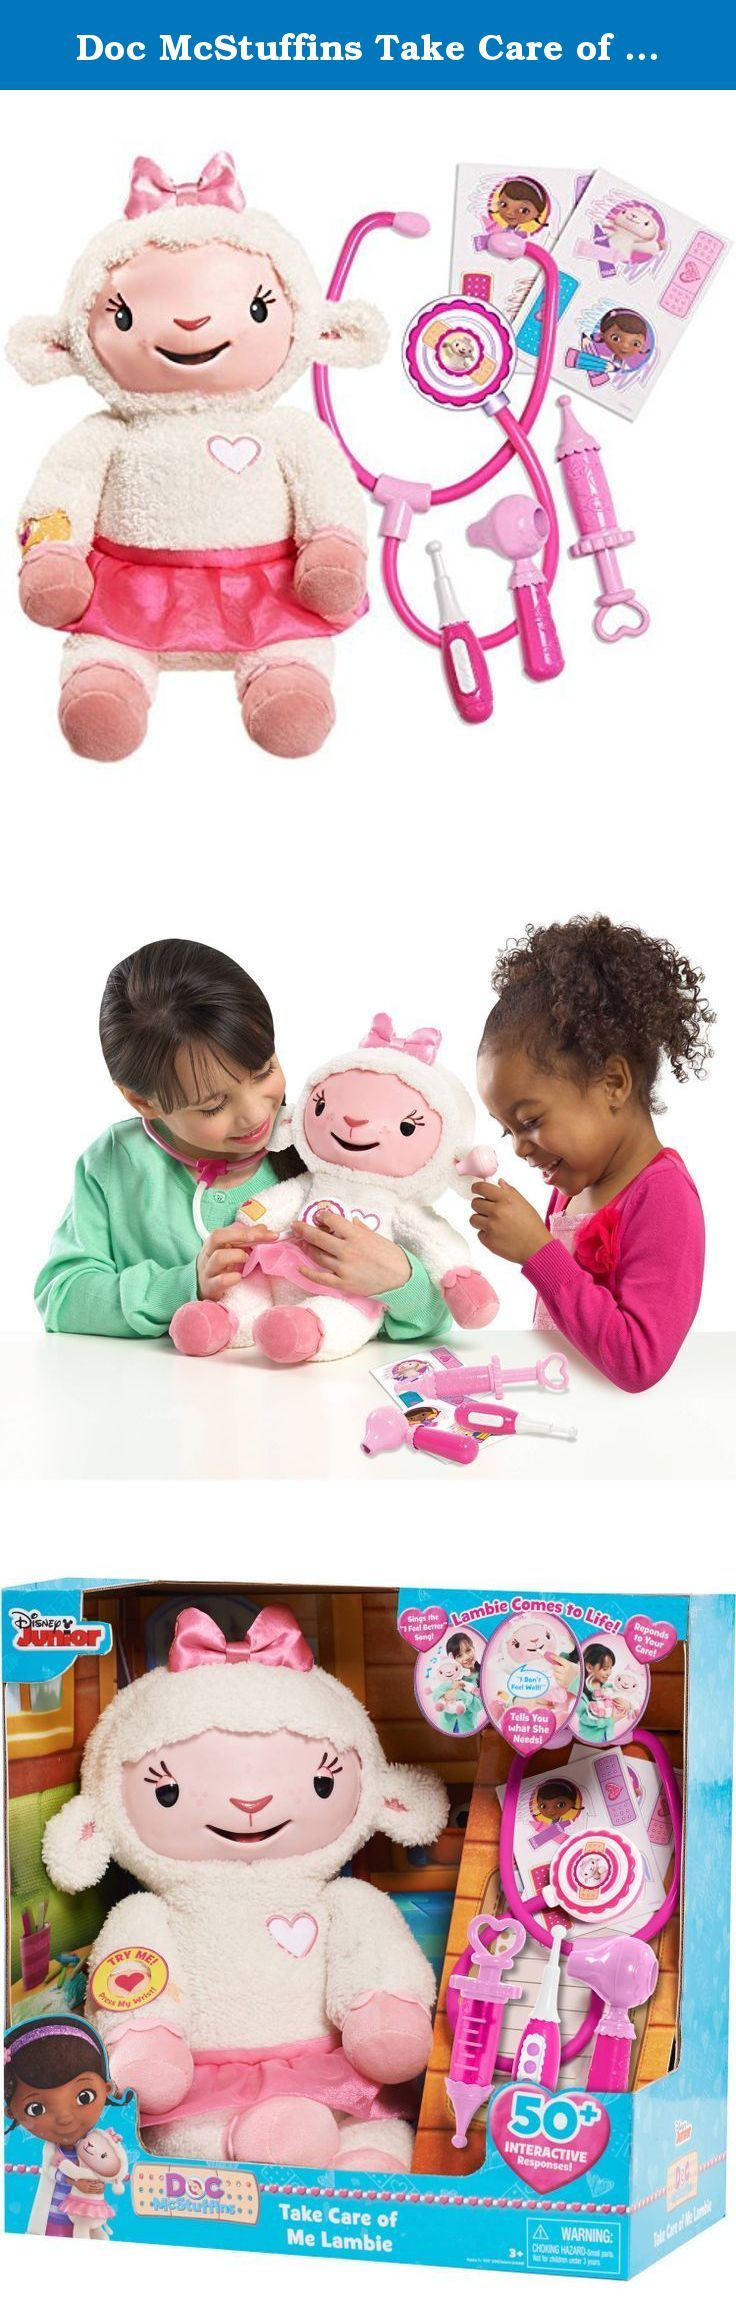 Doc McStuffins Take Care of Me Lambie Interactive Plush. This Doc McStuffins Take Care of Me Lambie is the must-have feature item of the year. It is just what all fans have been dreaming of. You can watch over this Take Care of Me Lambie toy all by yourself. There are so many ways to interact with her. This interactive plush toy has three triggers that give a ton of responses. Press her tummy and she may laugh or sing a song. Use the tools to give this Take Care of Me Lambie toy a check…